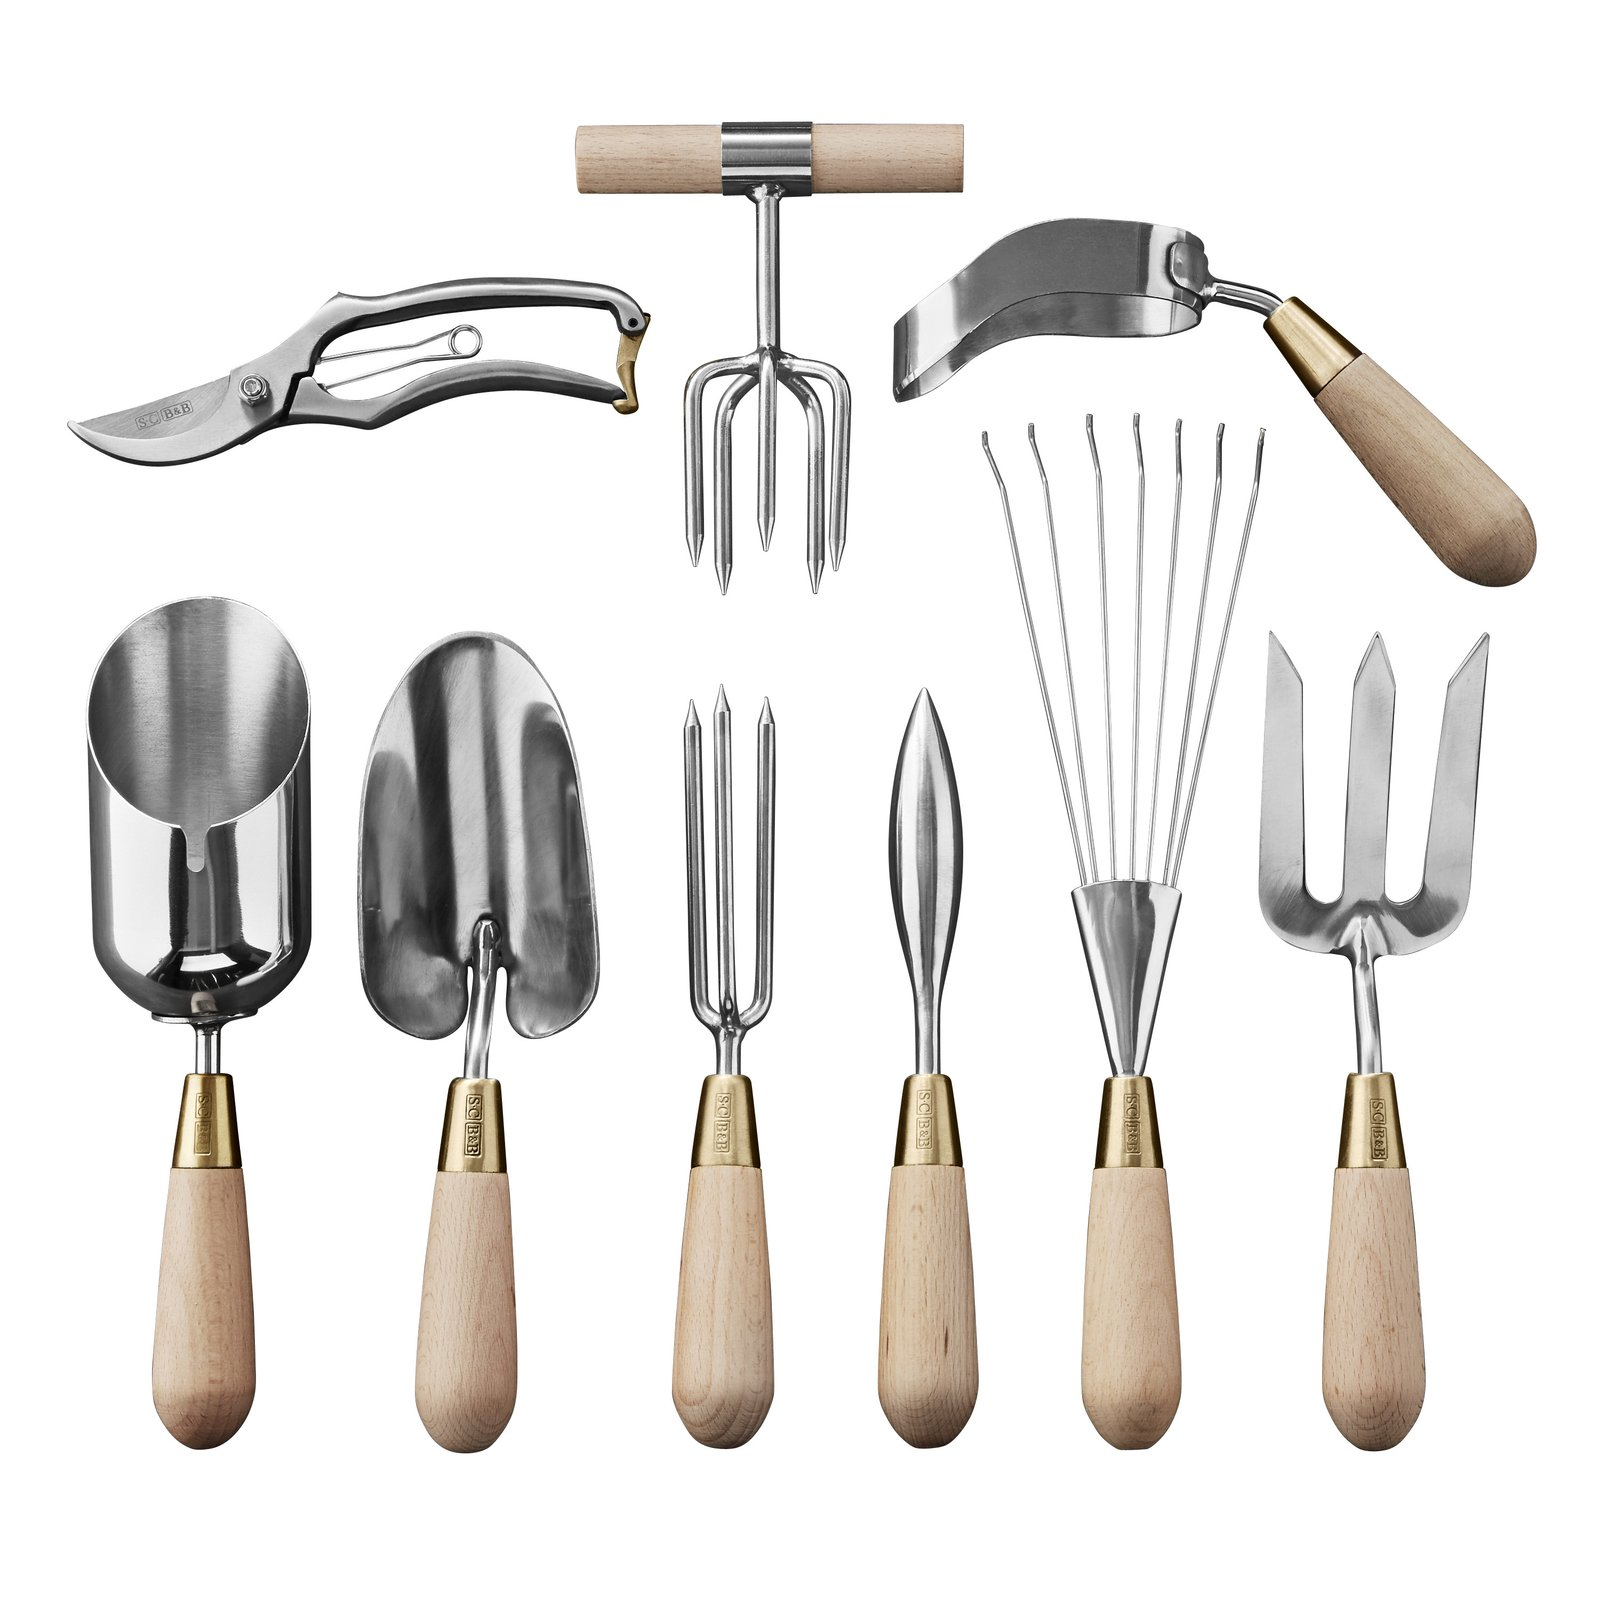 Ergonomically designed for women by English food writer and gardener Sophie Conran, the Ultimate Tool Set from Williams Sonoma ($250 for nine items) features polished steel heads, brass fittings, and solid beech wood handles.  Photo 21 of 24 in 24 Outdoor Products for Every Kind of Summer Plan